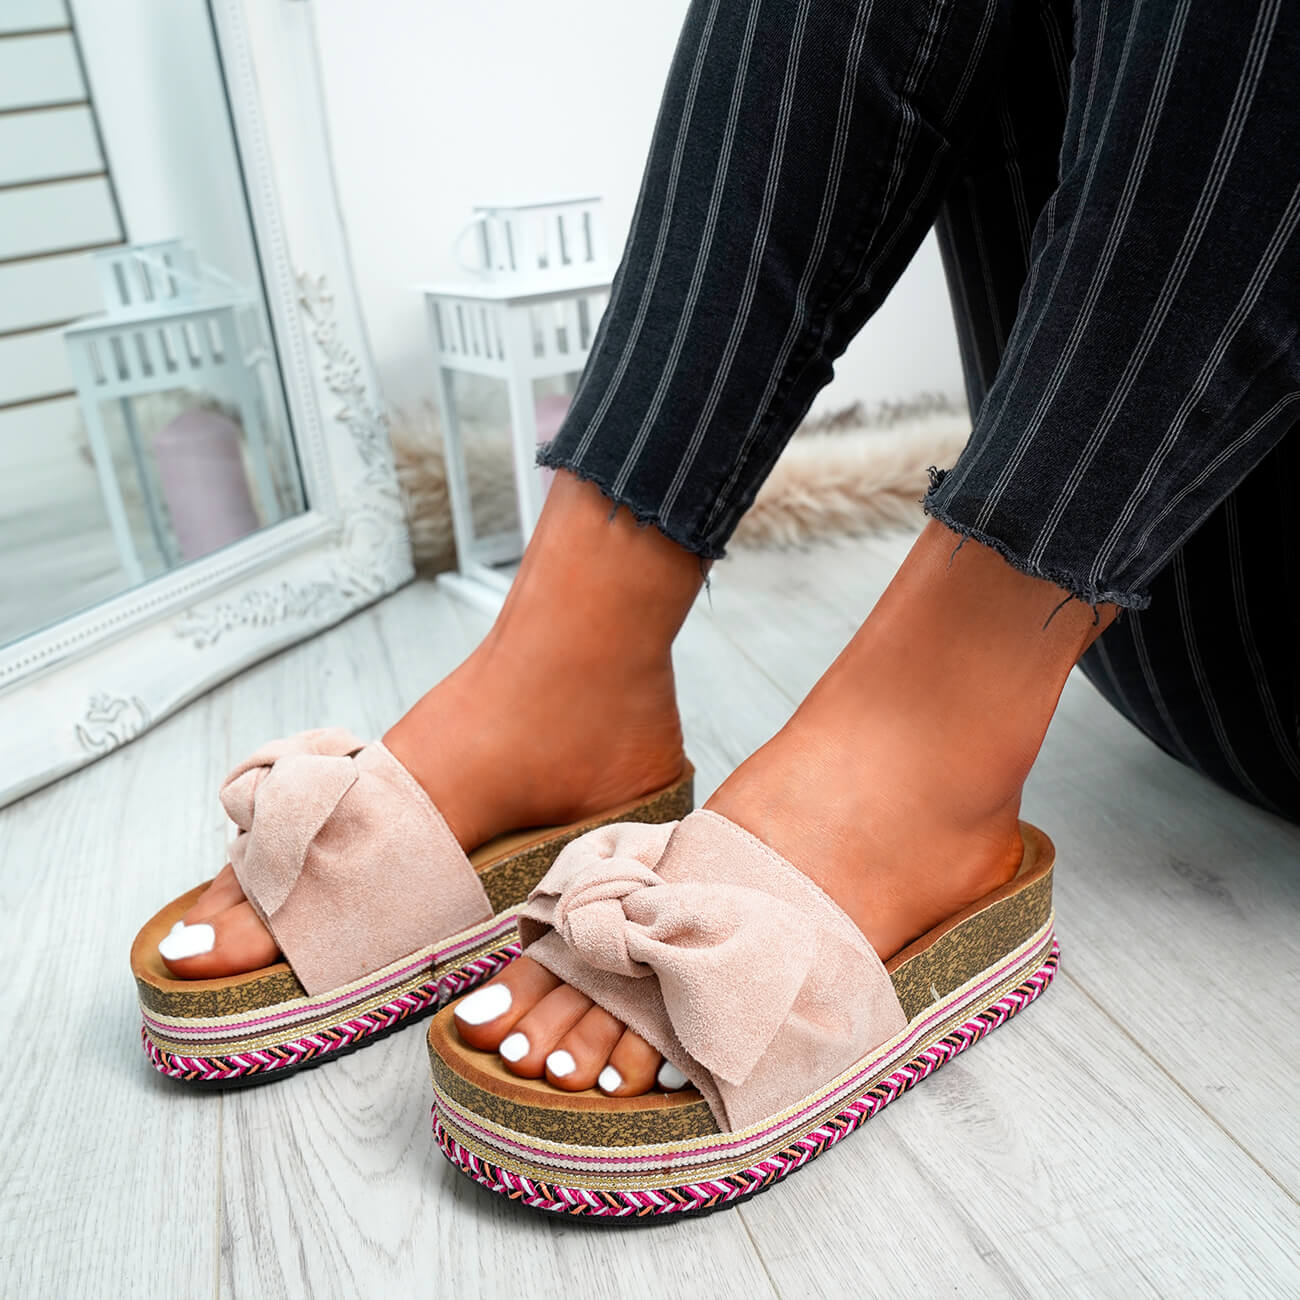 WOMENS-LADIES-BOW-SLIDERS-SLIP-ON-FLATFORMS-SUMMER-PARTY-SANDALS-SHOES-SIZE thumbnail 20